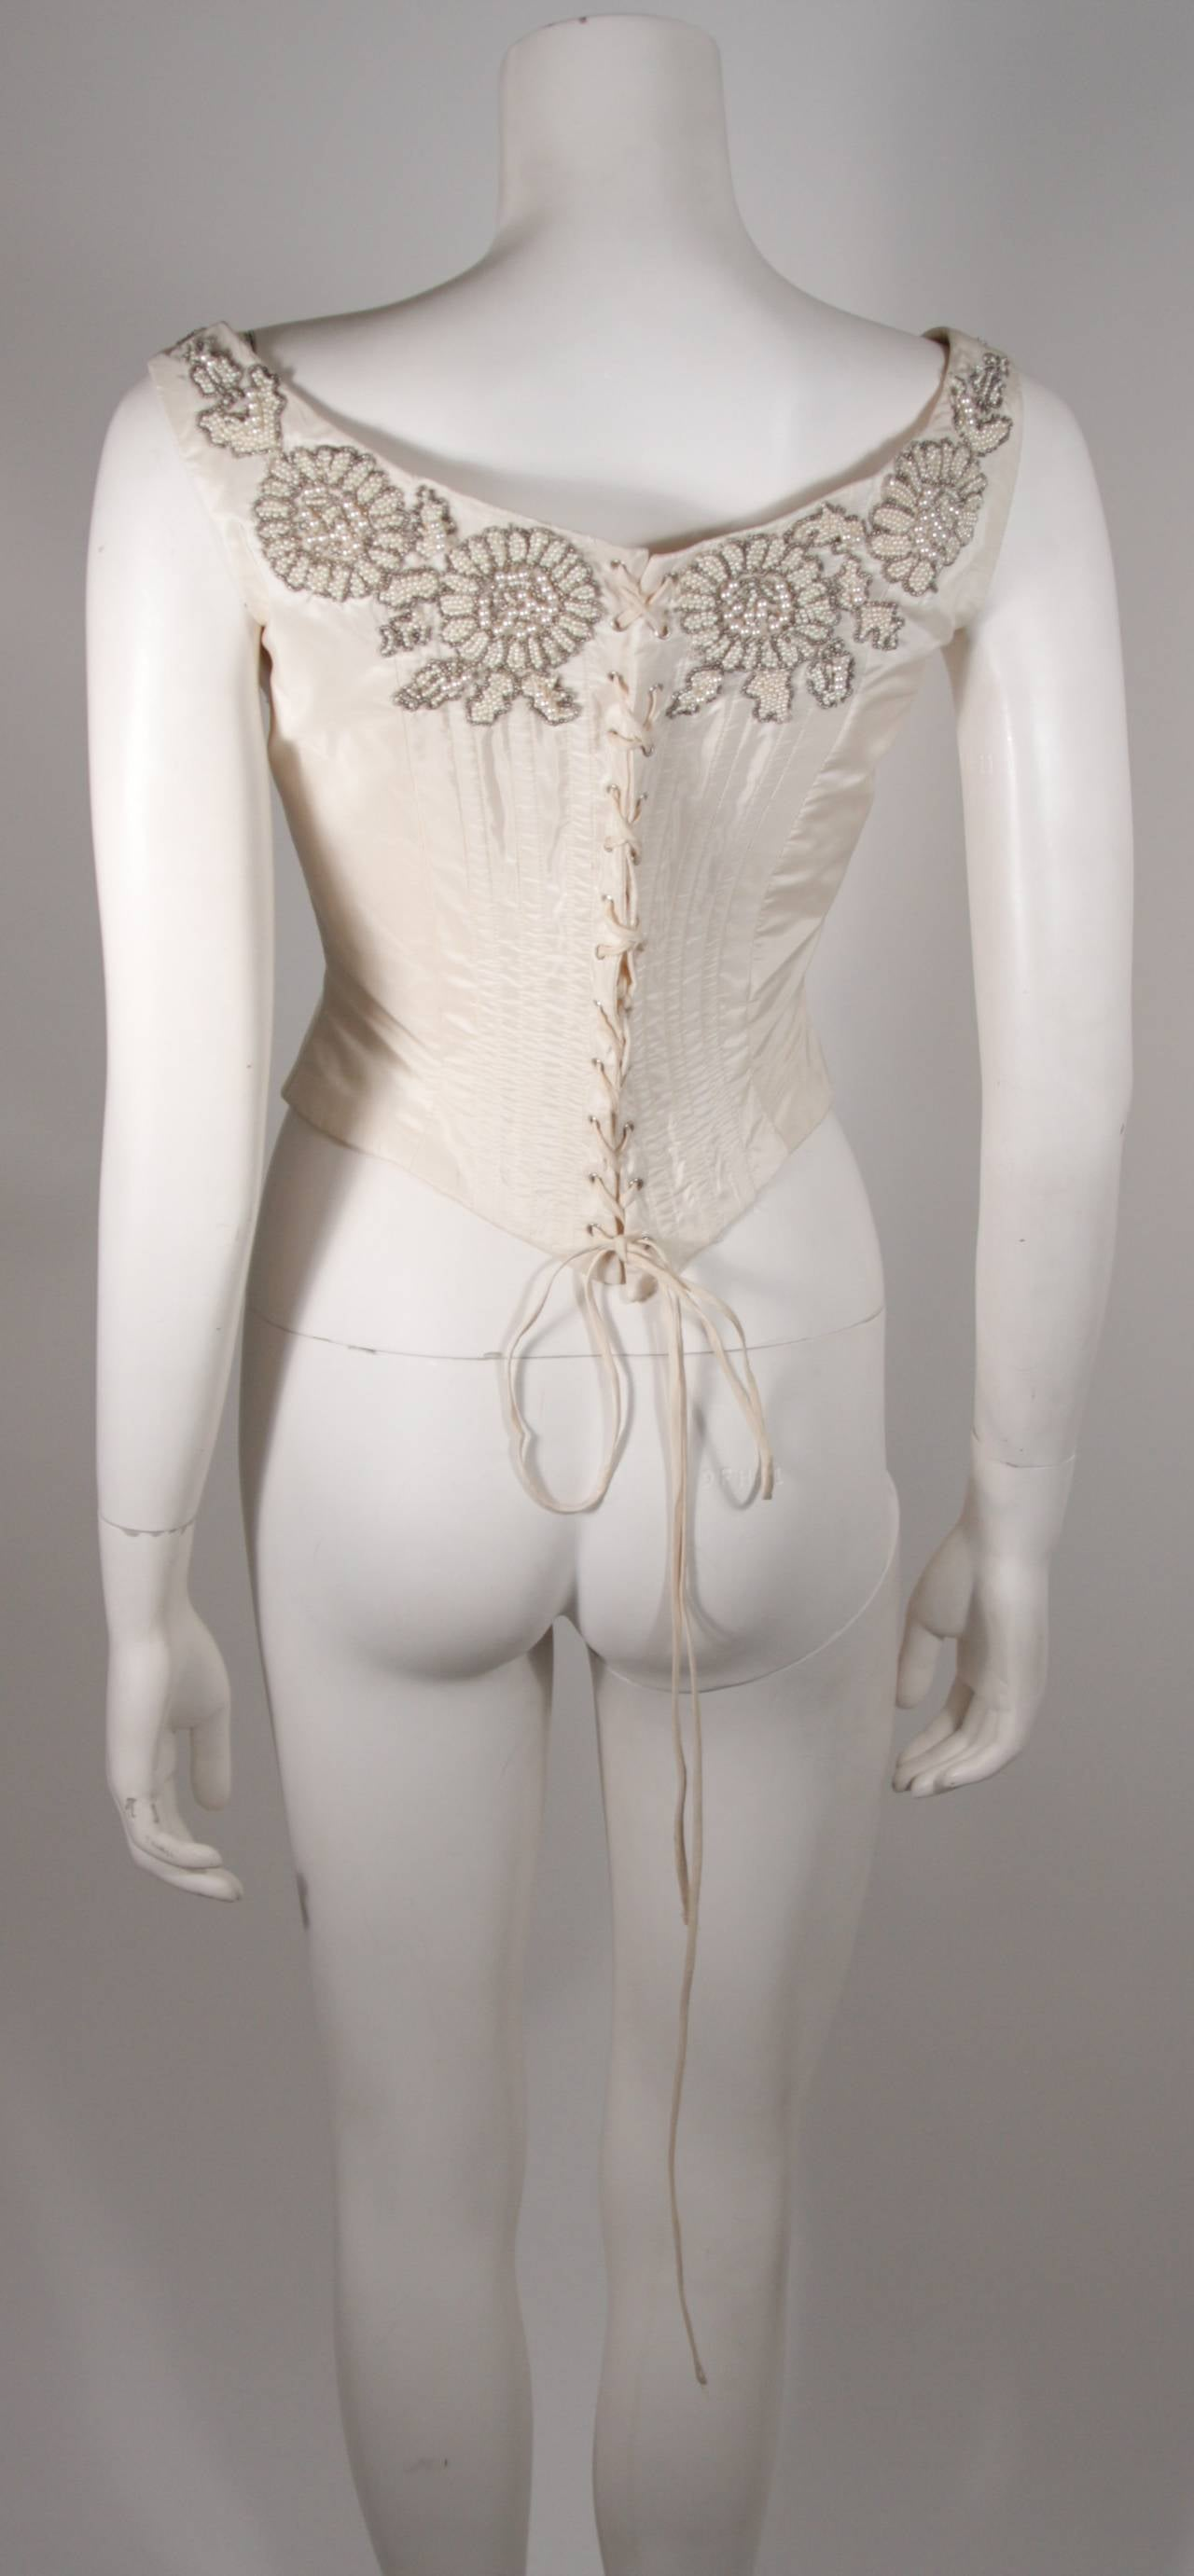 Eavis & Brown London Beaded Cream Silk Corset Bustier Size M 7